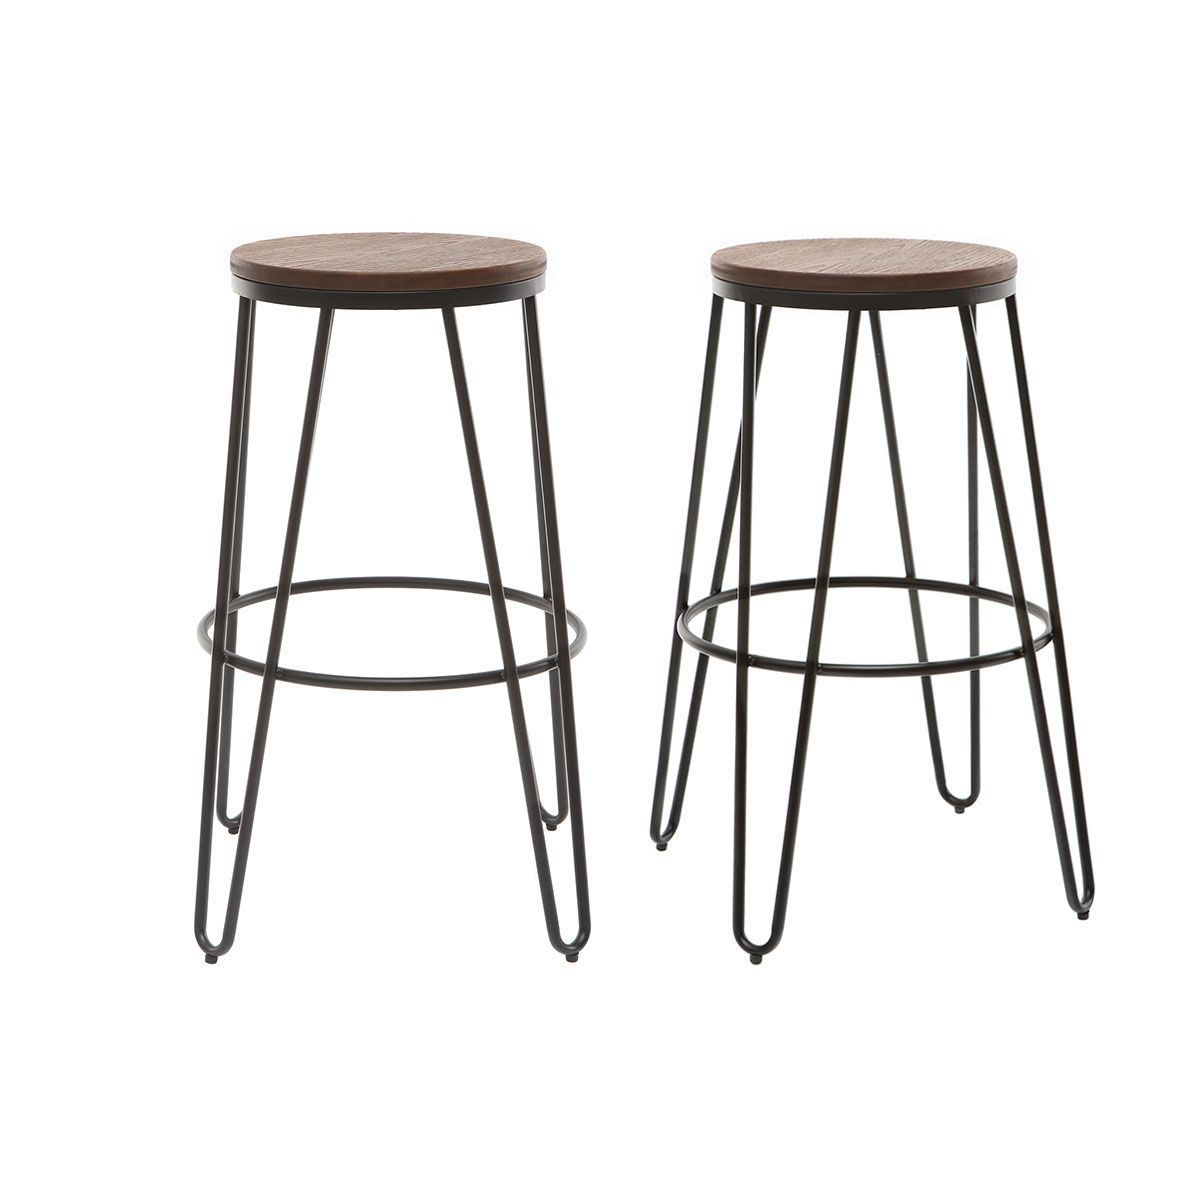 Tabourets De Bar Empilables En Metal En Bois H75 Cm Lot De 2 Igla Taille Taille Unique En 2019 Products Tabouret Table Bar Et Bar